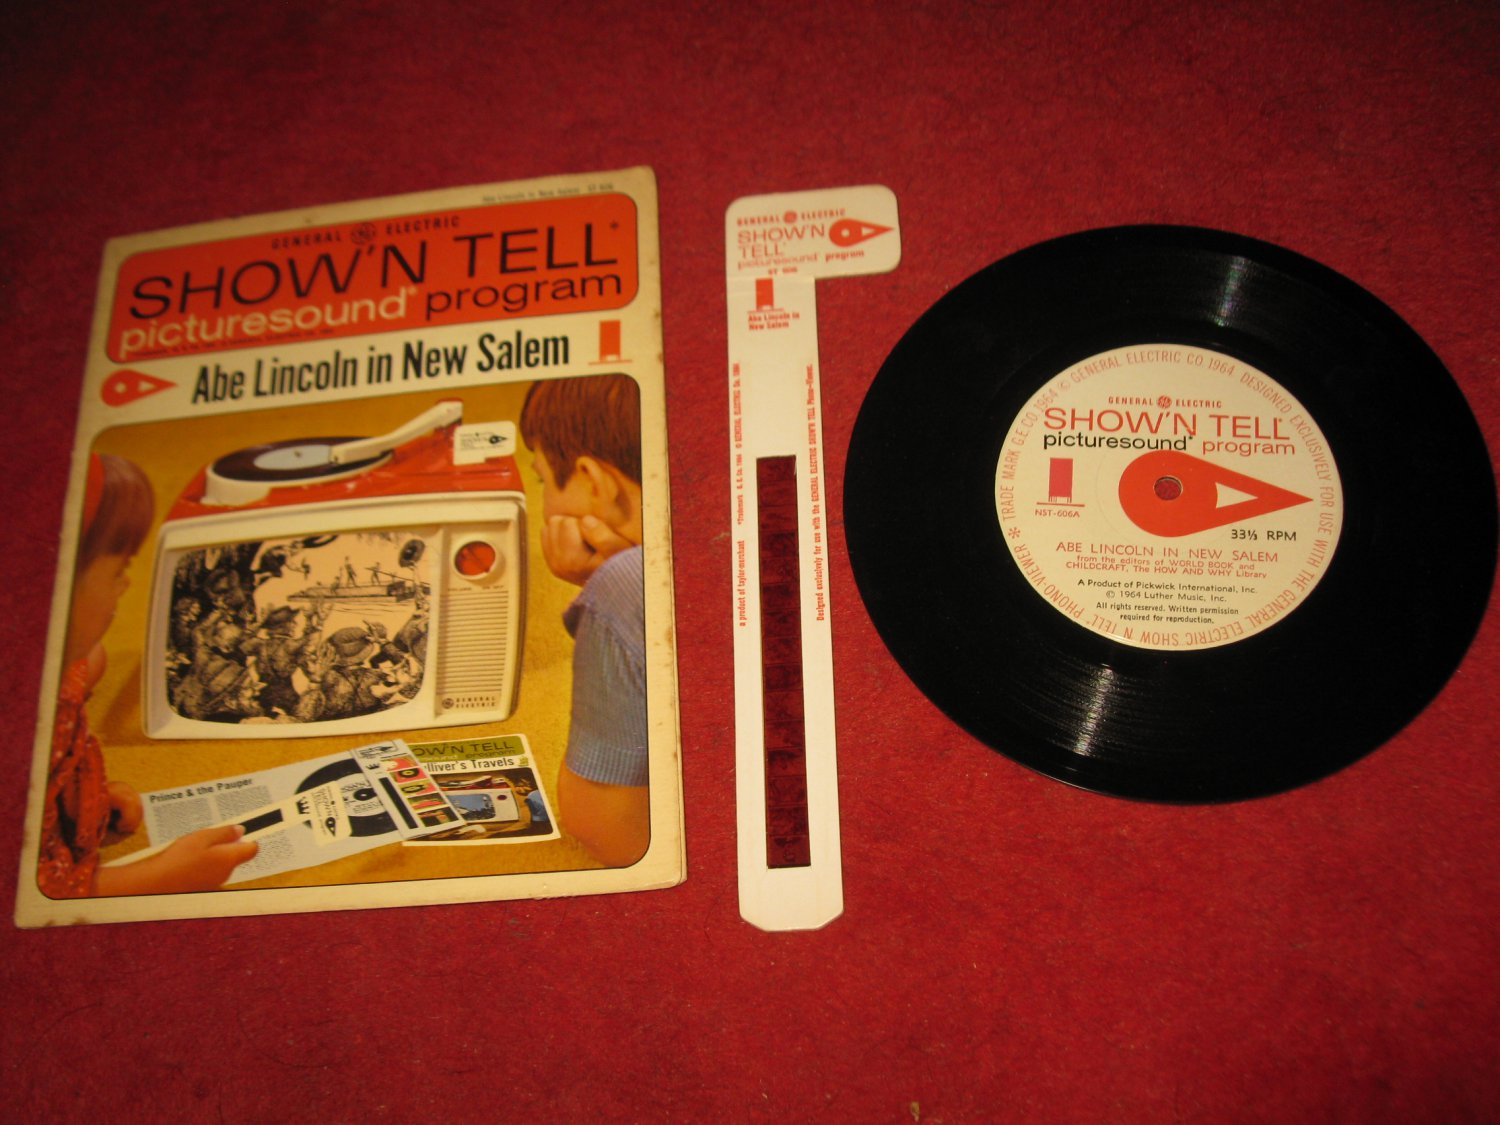 vintage 1964 GE Show 'N Tell Record and Film Cel Set #ST-606 - Abe :Lincoln in New Salem